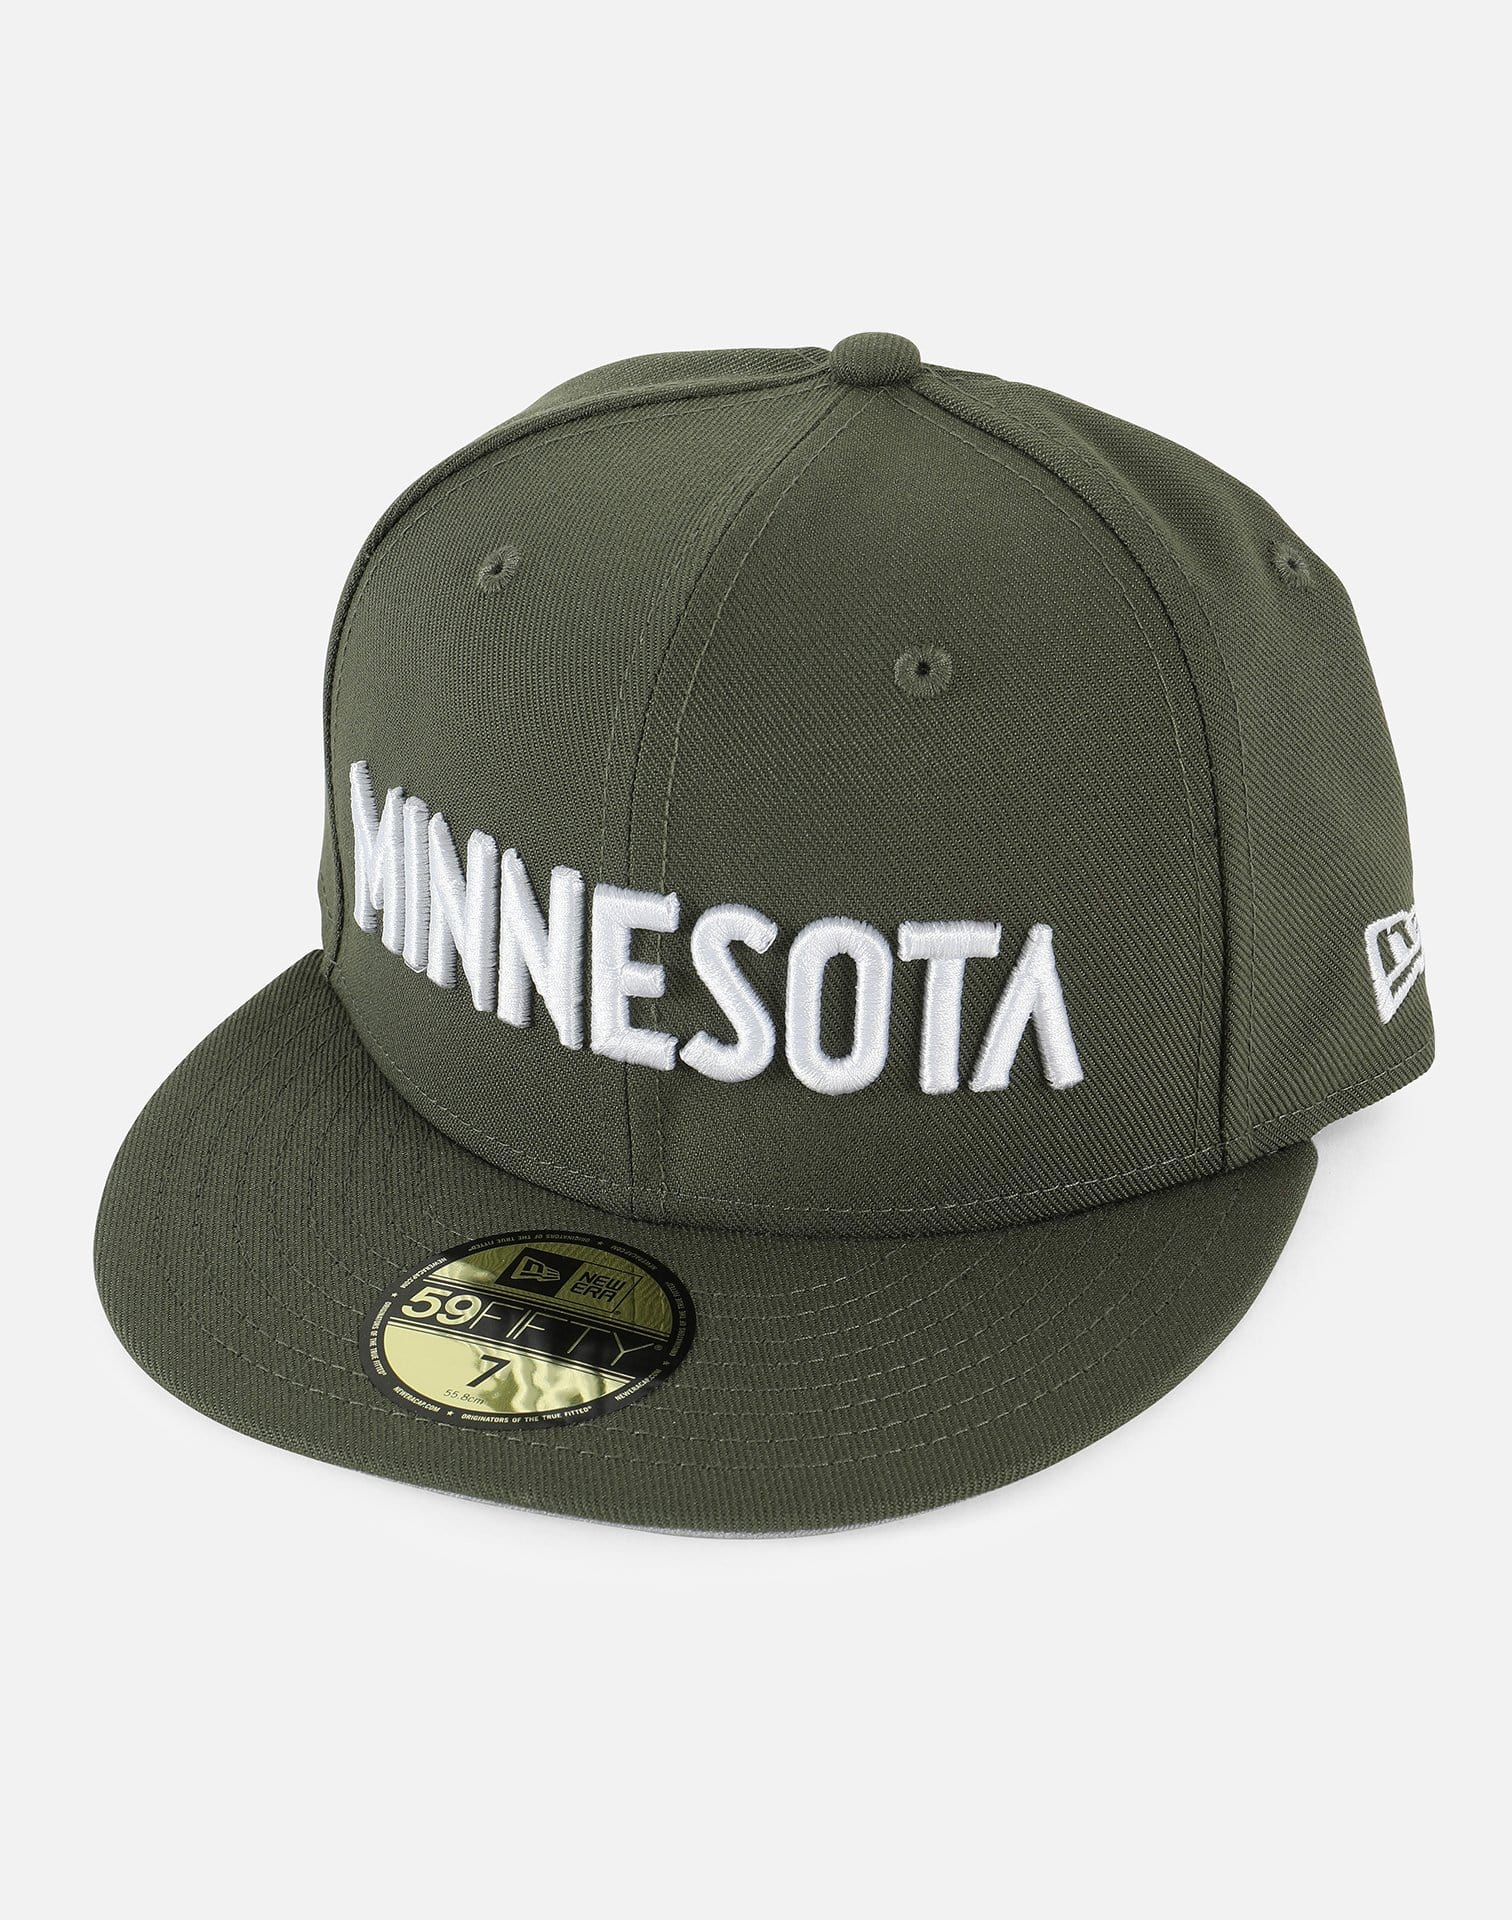 New Era 5950 NBA Minnesota Timberwolves Fitted Hat